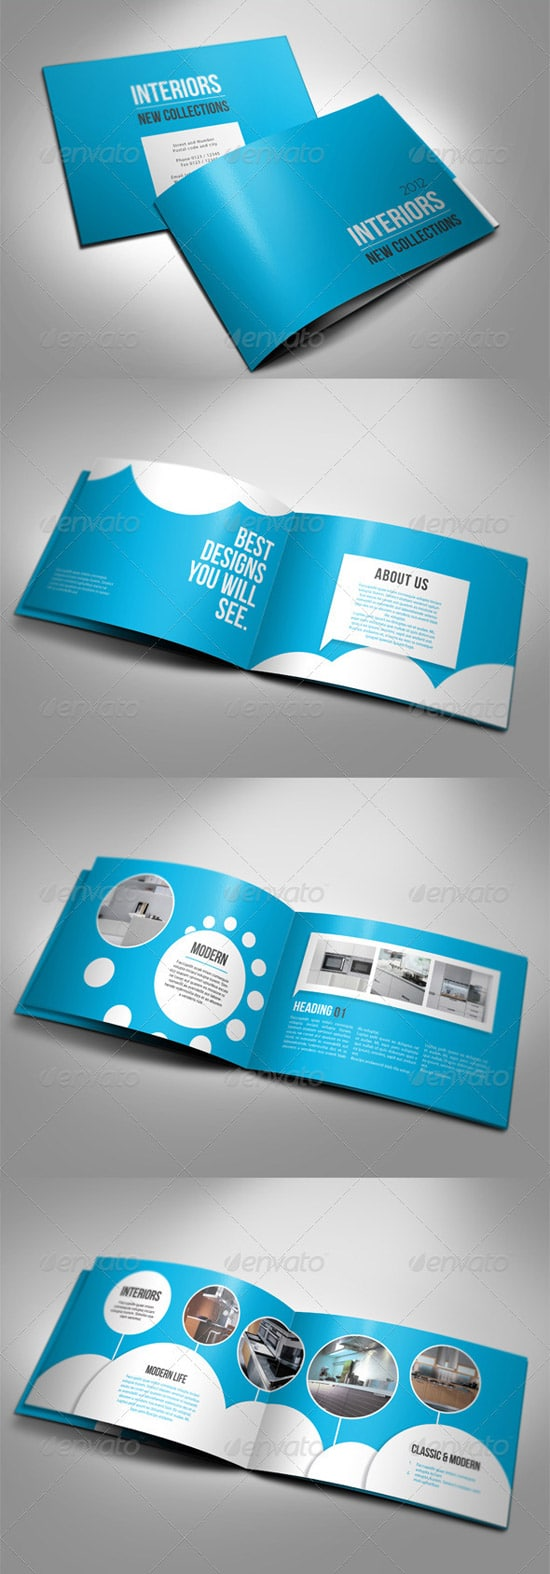 Print Templates - A5 Booklet